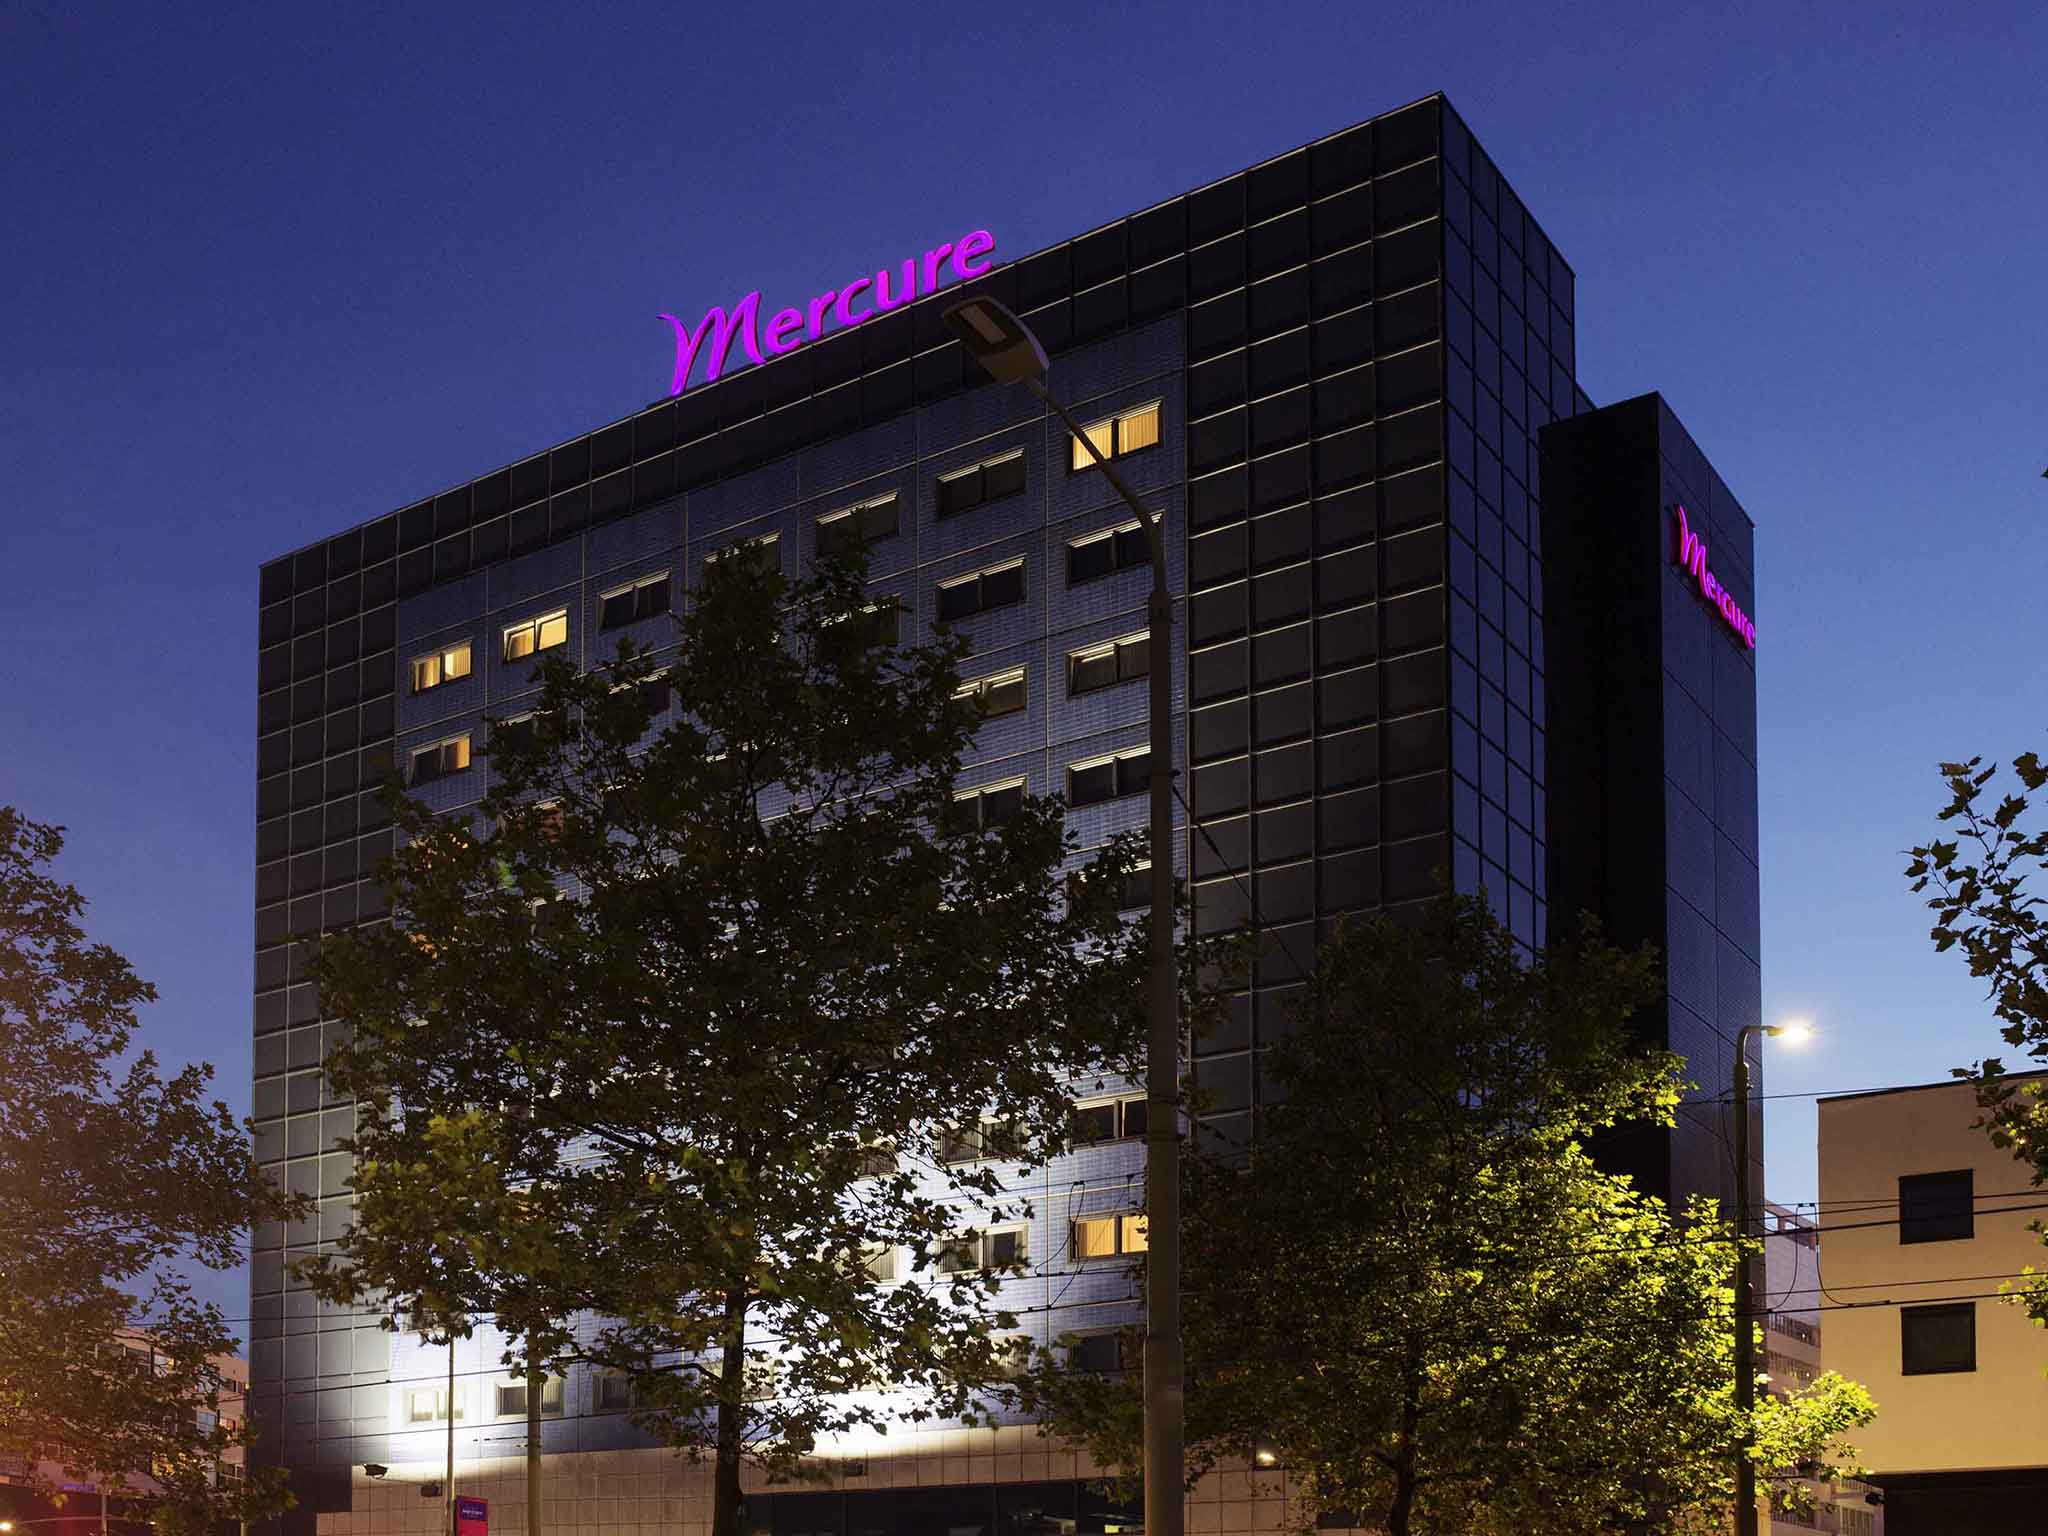 Business Hotel The Hague   Mercure   In The City Centre